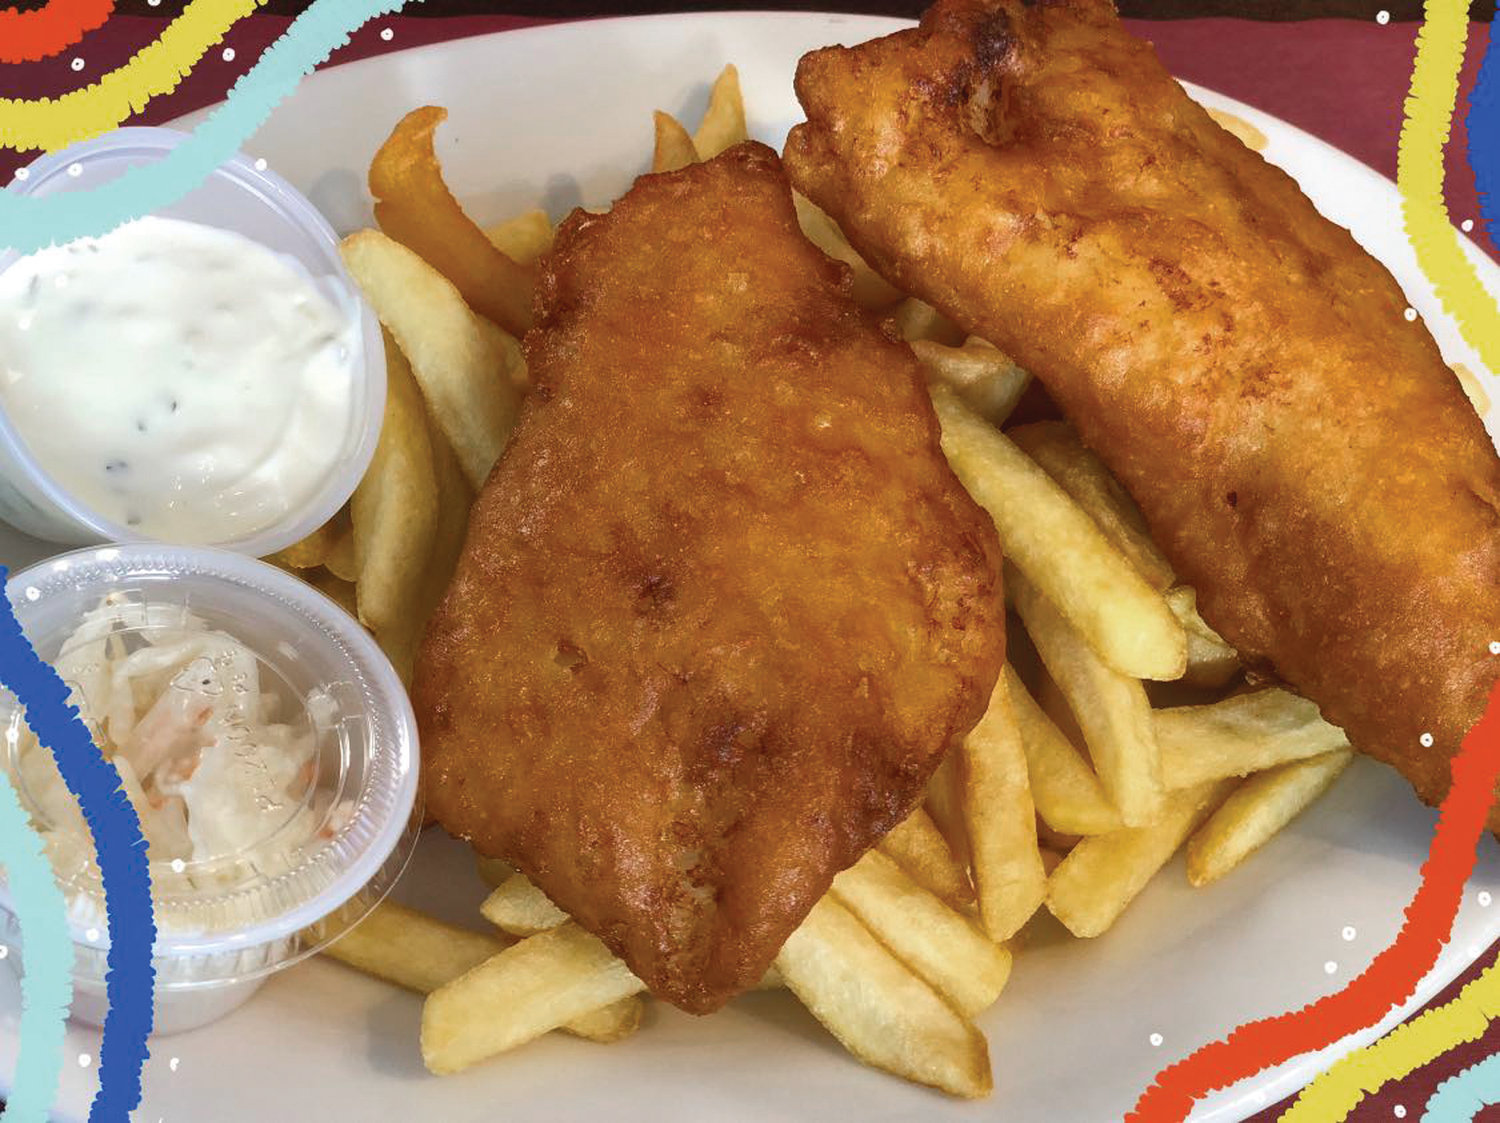 Diners will find mouth-watering dishes like these crunchy, golden-brown Fish & Chips at Beach Café & Pub. Come inside this winter and enjoy their BOGO Special on Mondays – buy one burger, get the second one free with the purchase of a beverage (for dine-in guests only!)